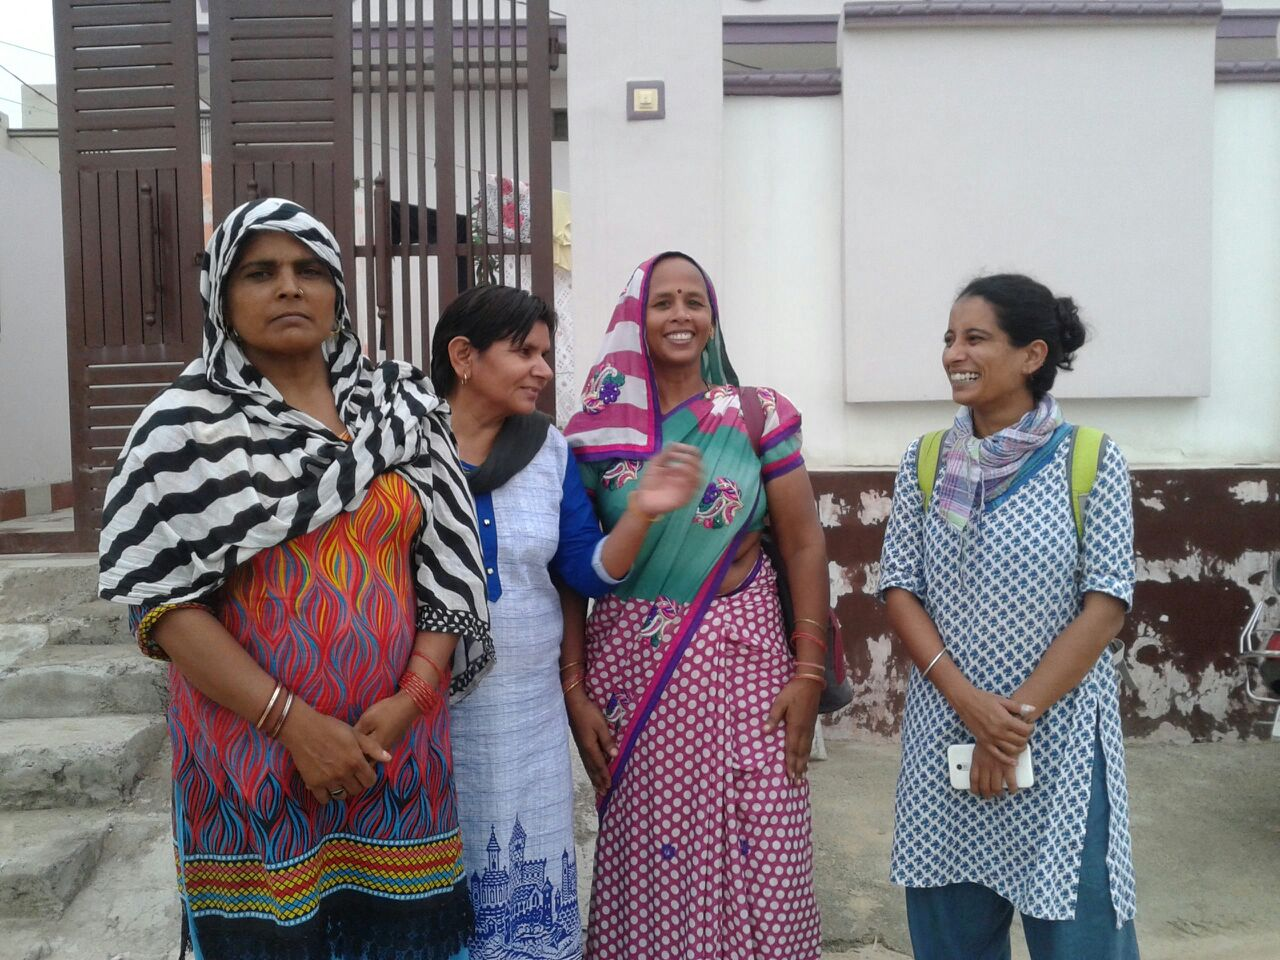 Talking To India's Unheard, Invisible Women